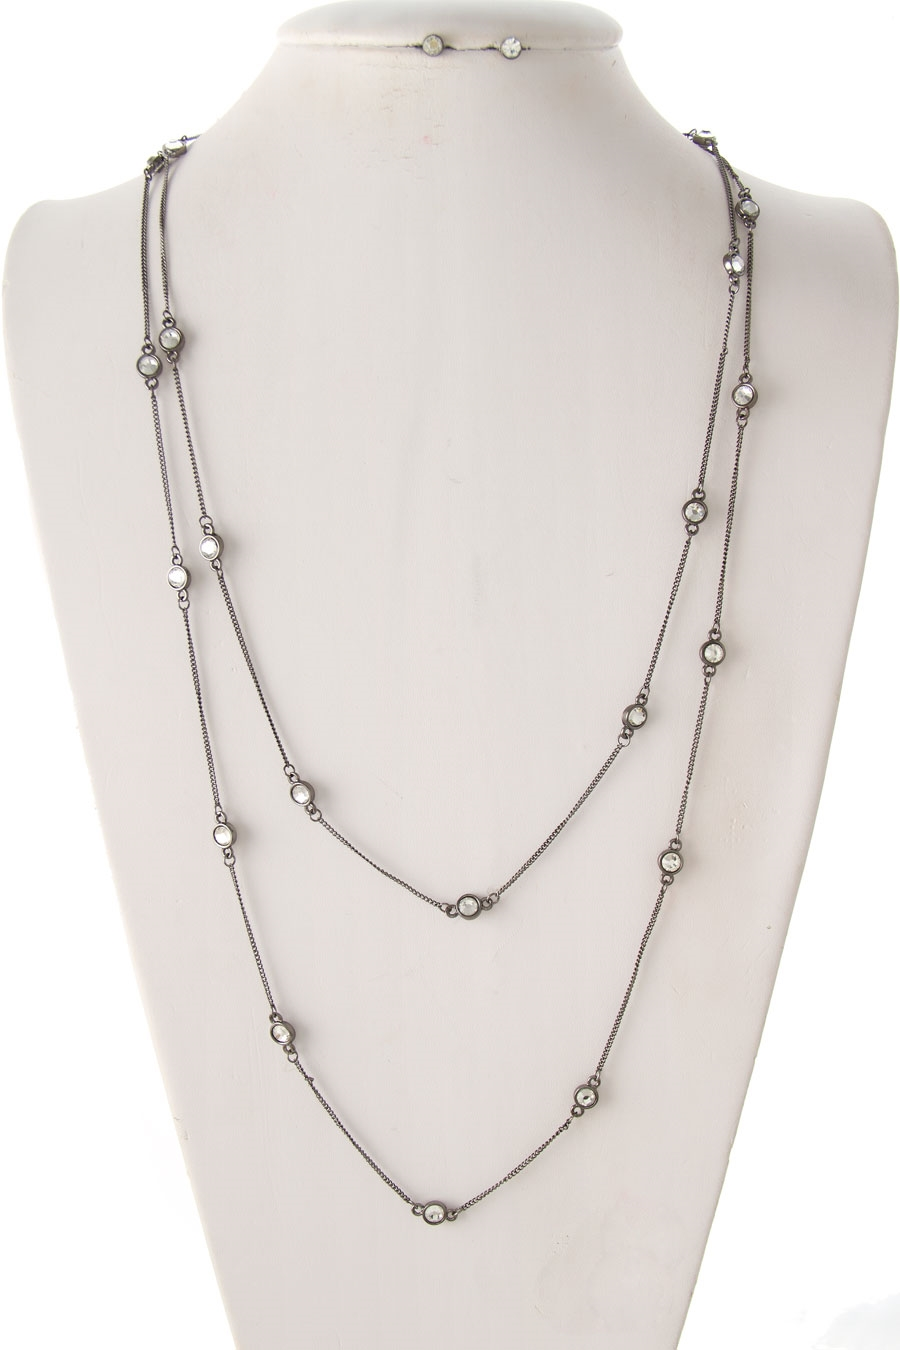 MULTI CRYSTALS PETITE NECKLACE - orangeshine.com